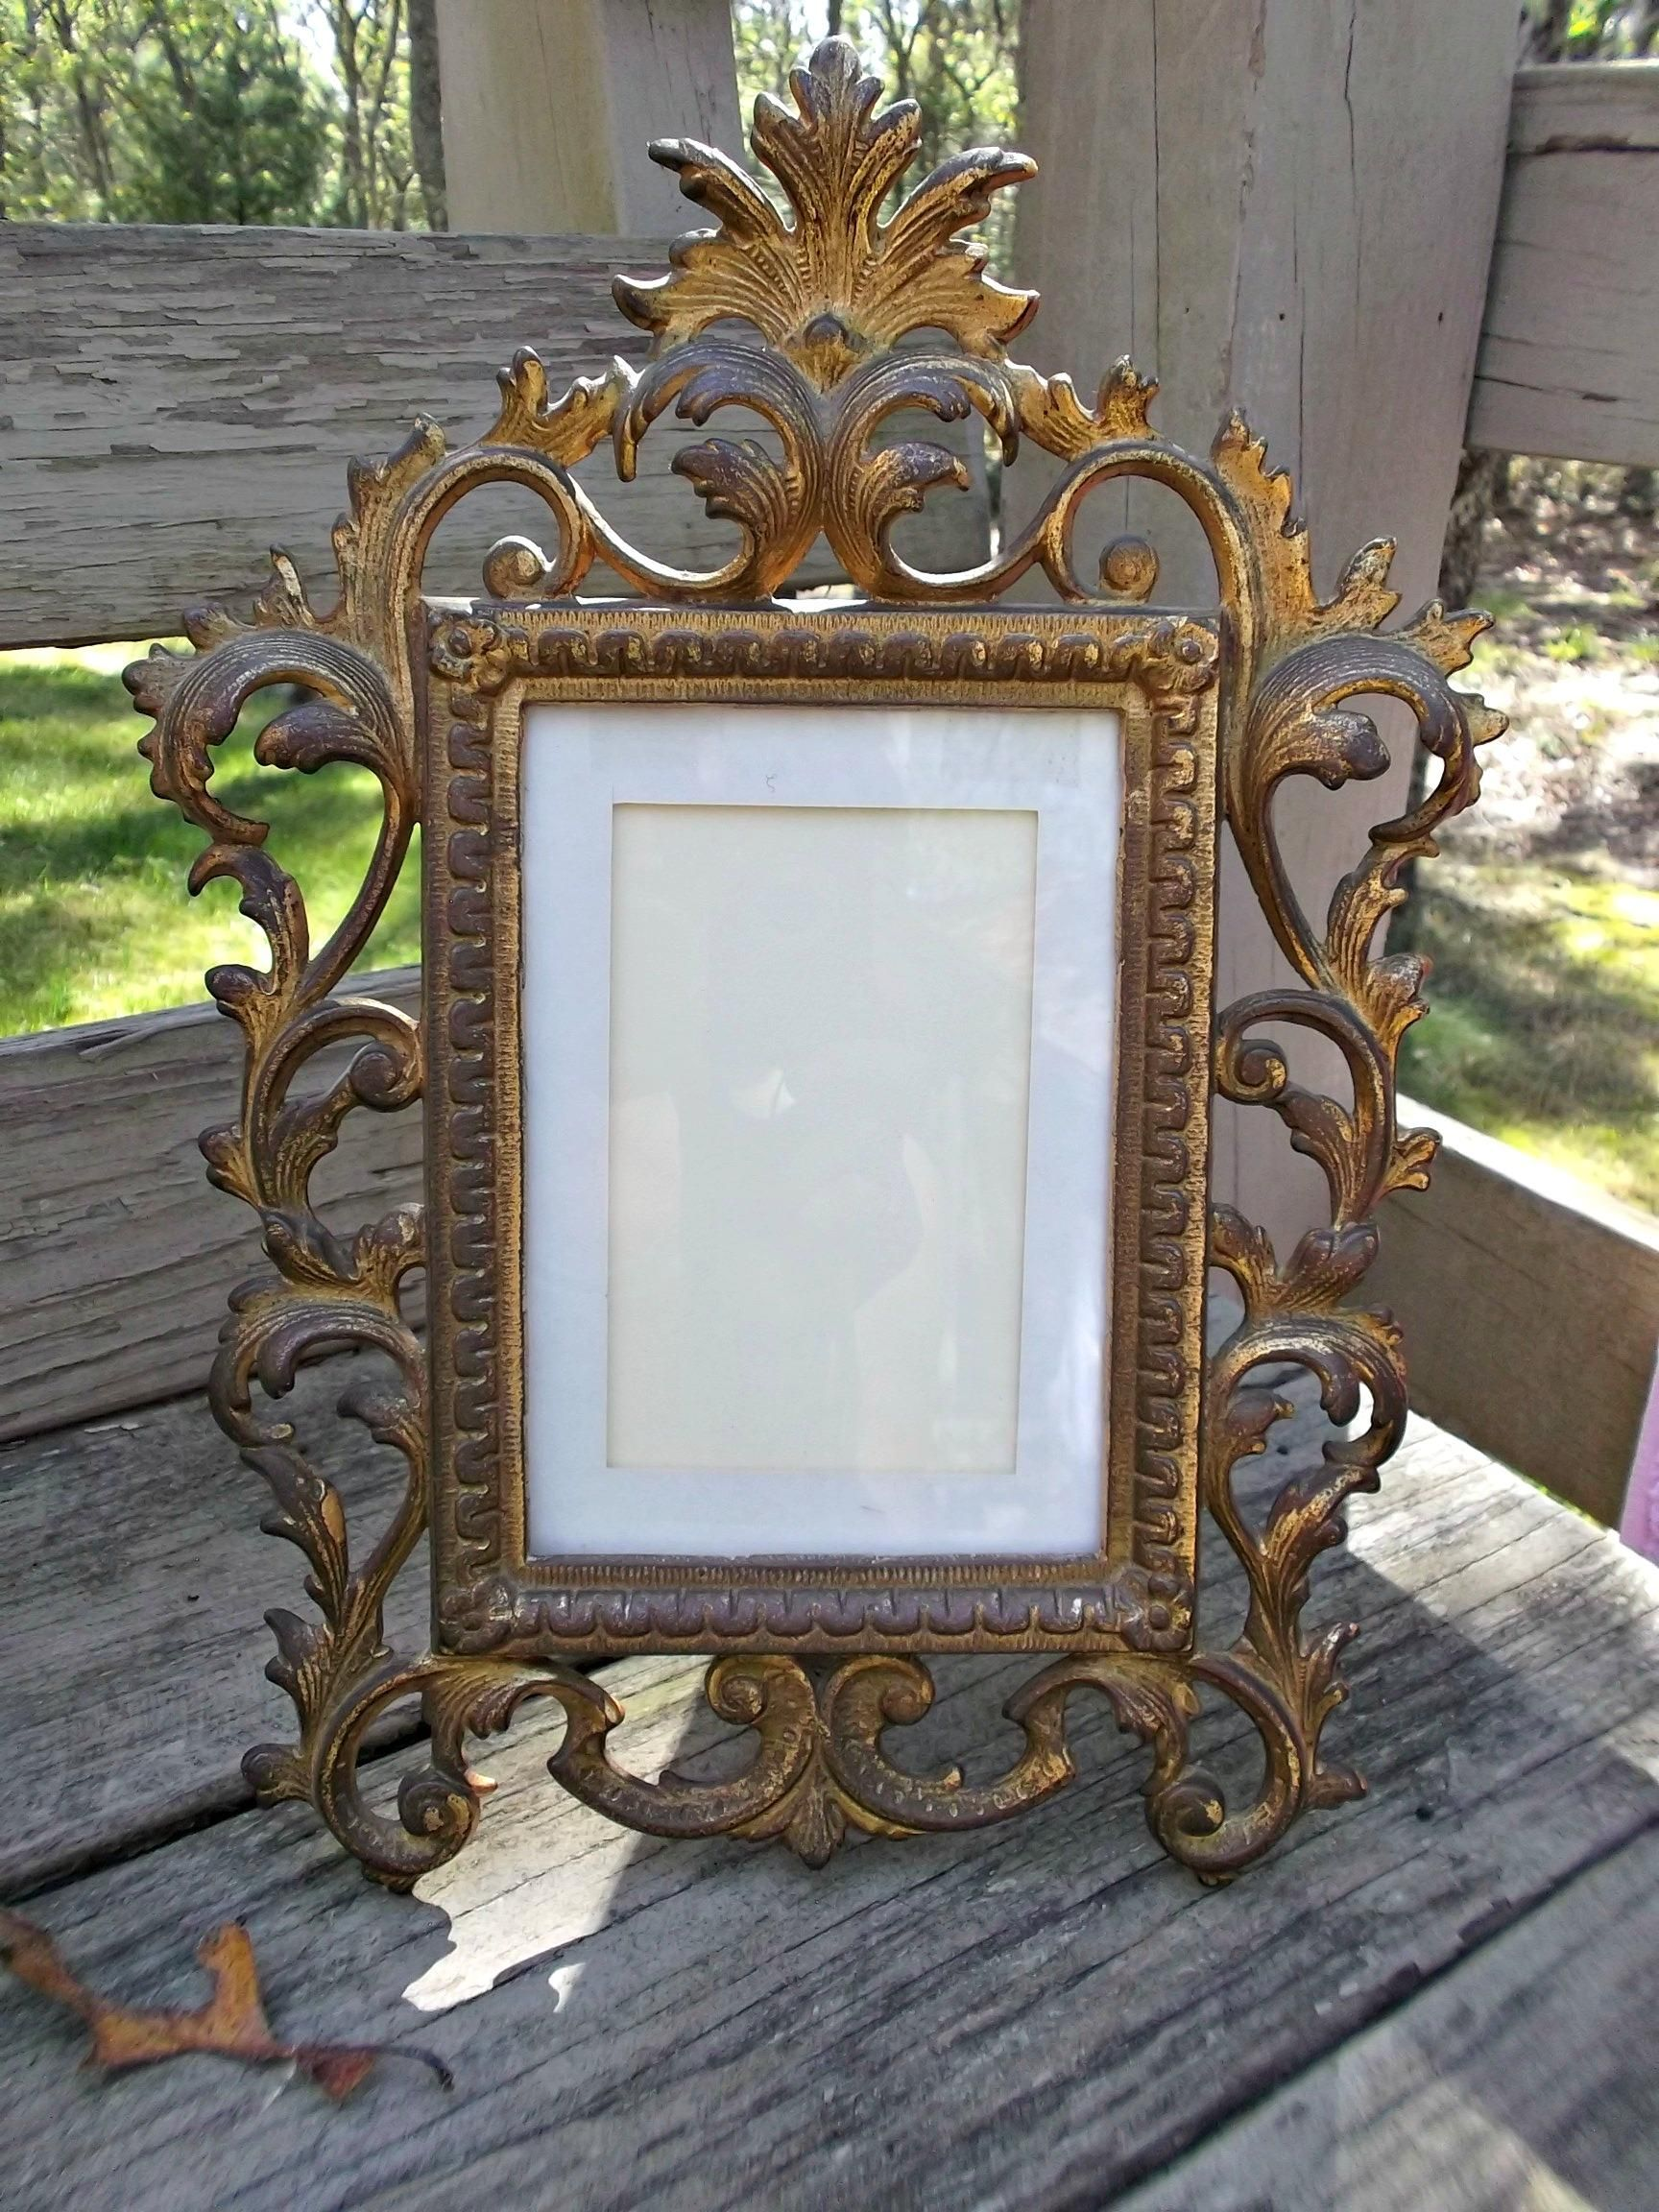 A Vintage Ornate Rococo Style Stand Up Photo Picture Frame In Gilded Metal Cast Iron Lever Back Measures Twelve Inches Tall By